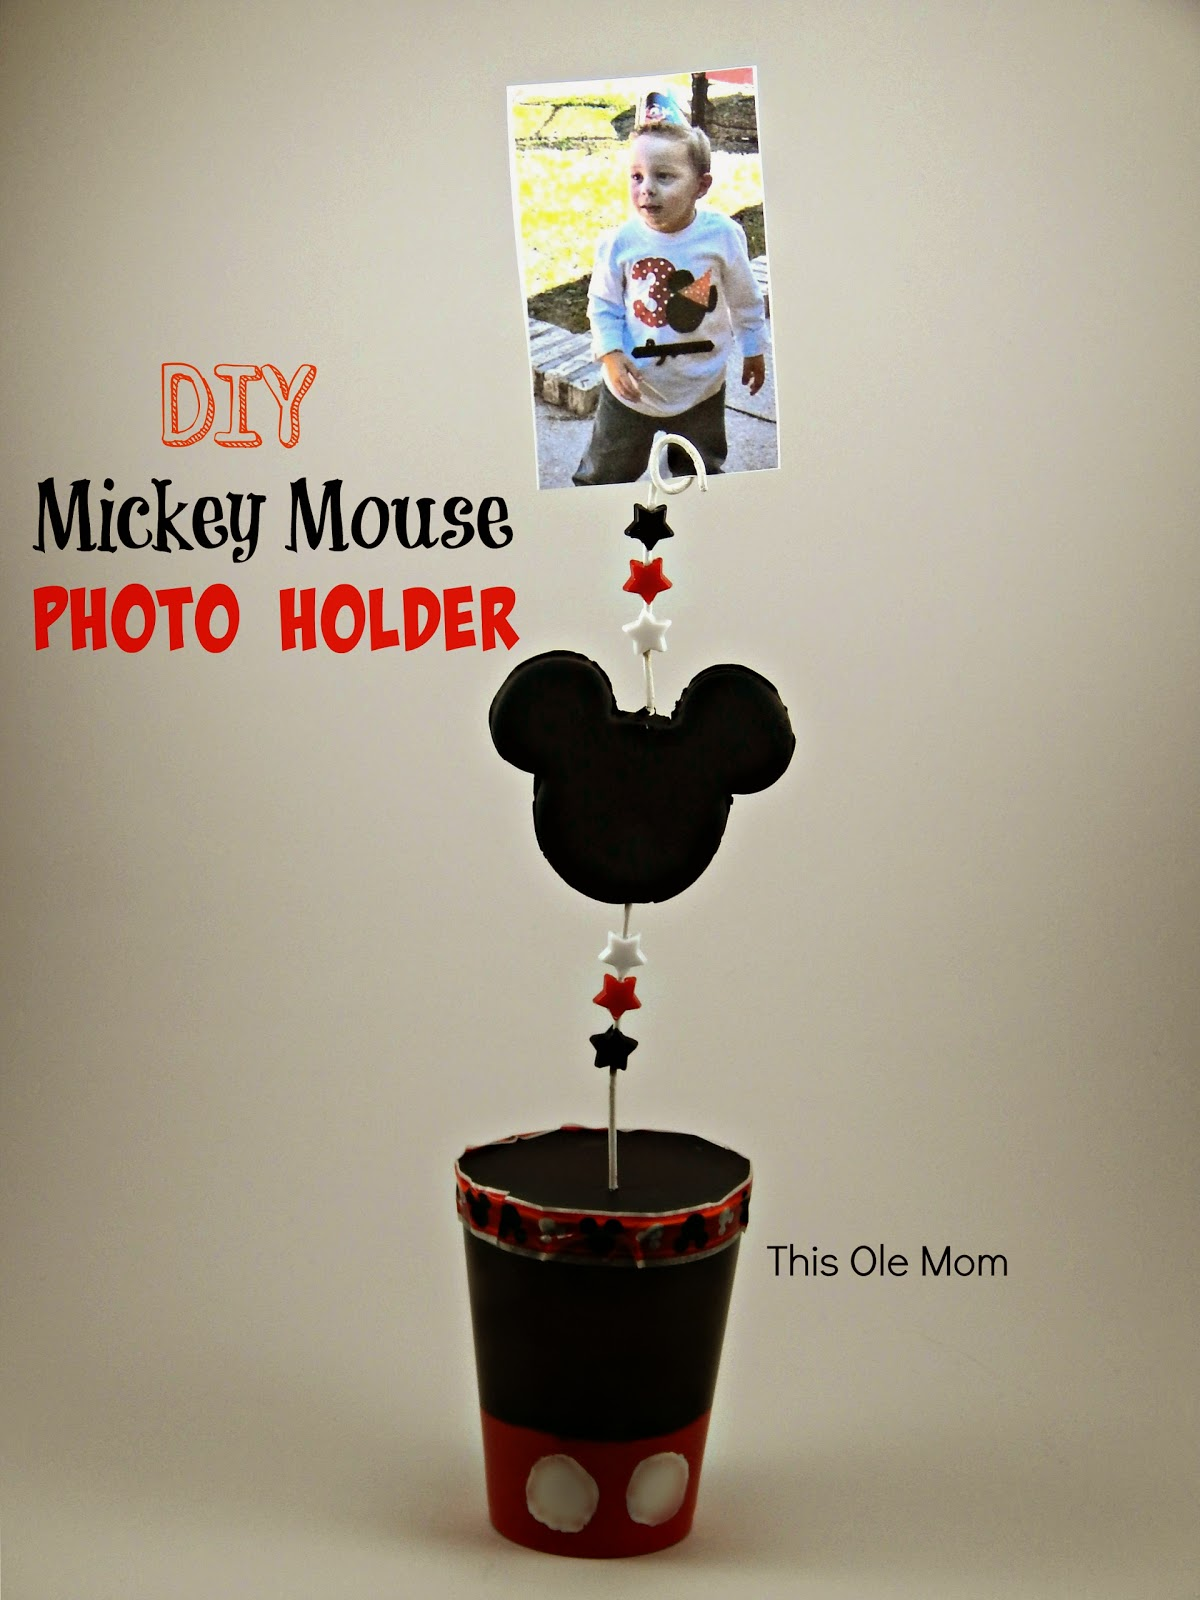 Disney Mickey Mouse Picture Holder, Disney Photo Holder, Mickey Mouse Photo Holder, How to make a photo holder